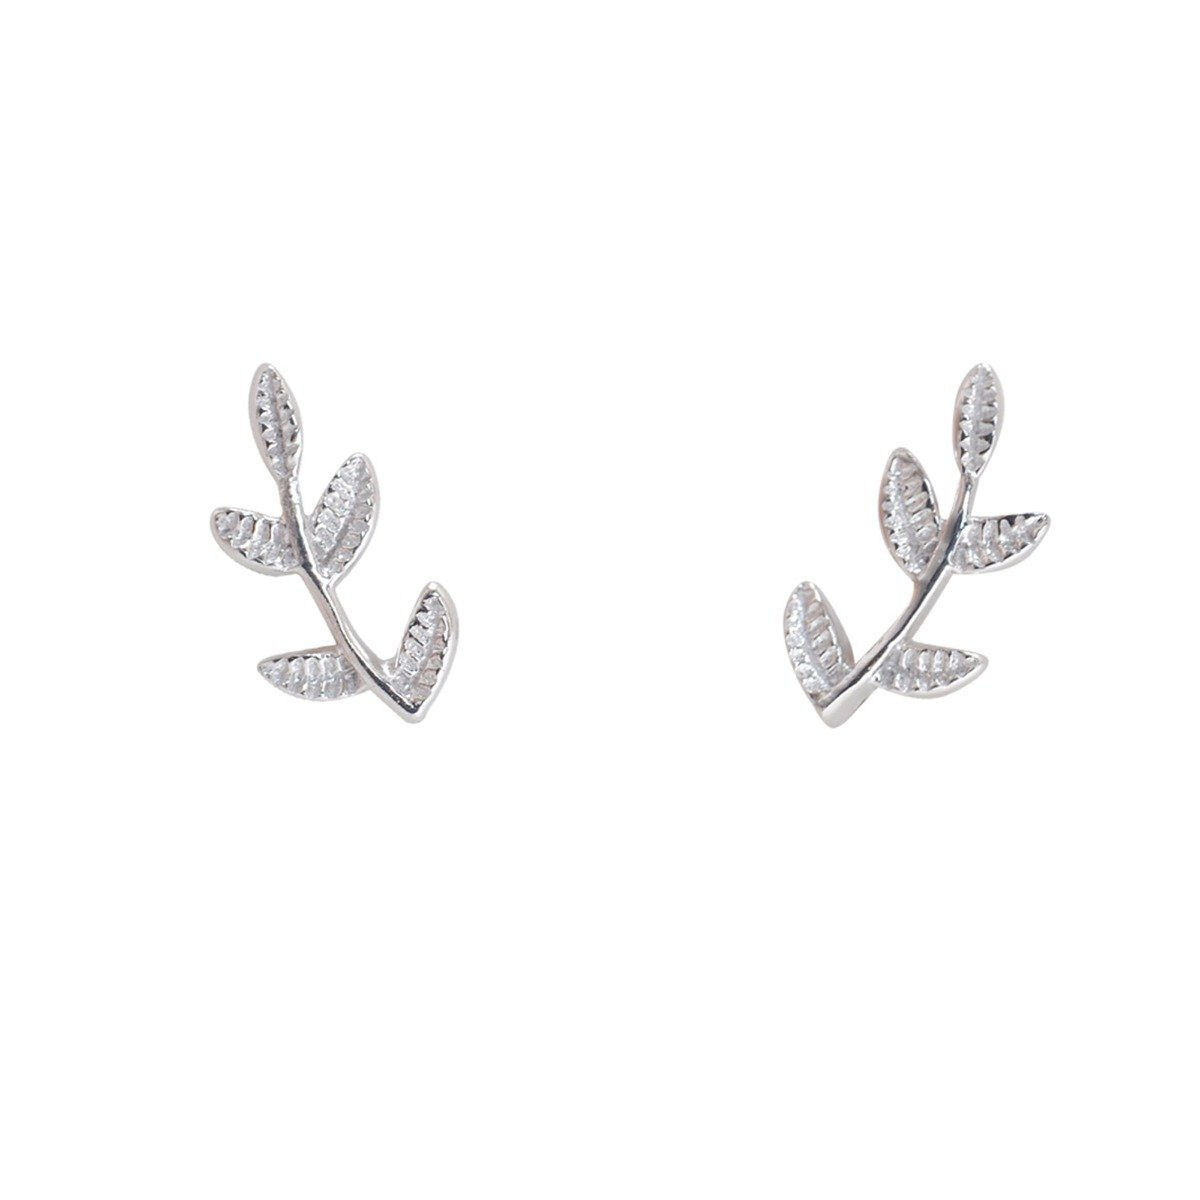 Humble Chic Tiny Leaf Studs - 925 Sterling Silver Delicate Branch Post Ear Stud Earrings, 925 White Tiny Branch, Sterling Silver, Hypoallergenic